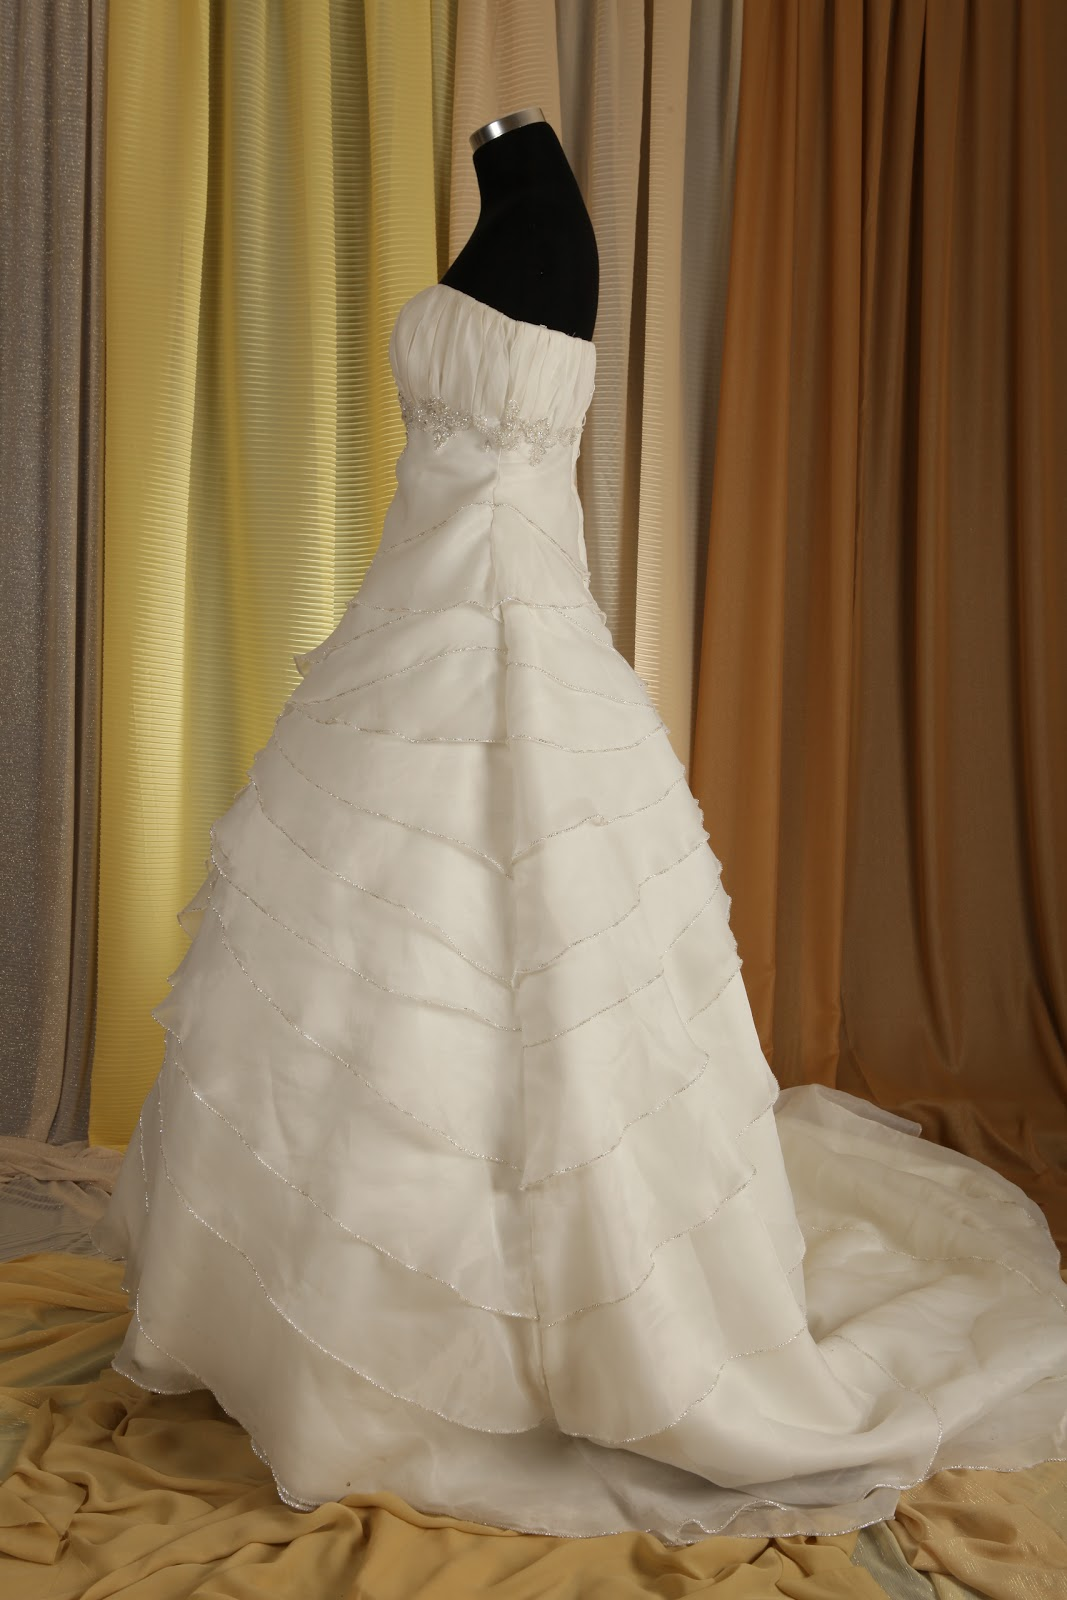 Wedding Gowns For Rent In Bacolod City : Wedding gowns designer in bacolod city entourage